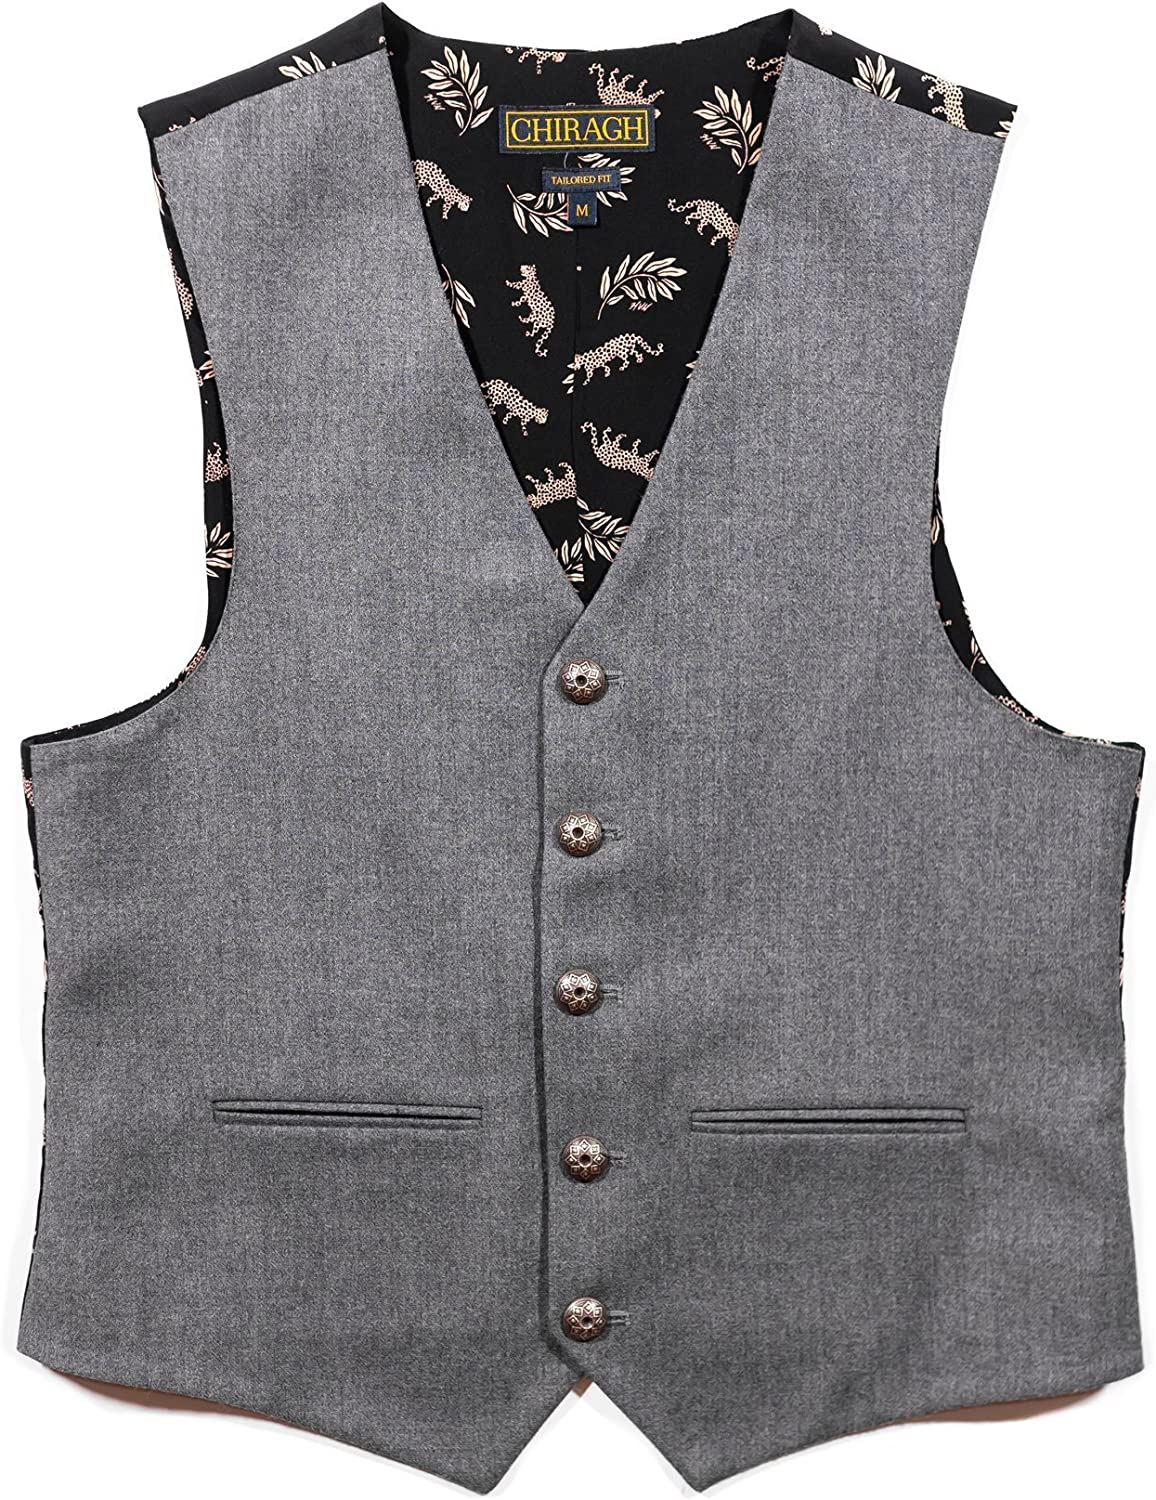 Chiragh Apparel Anastasia Mens V-Neck Tailored Fit 5 Button Dress Casual Vest Waistcoat